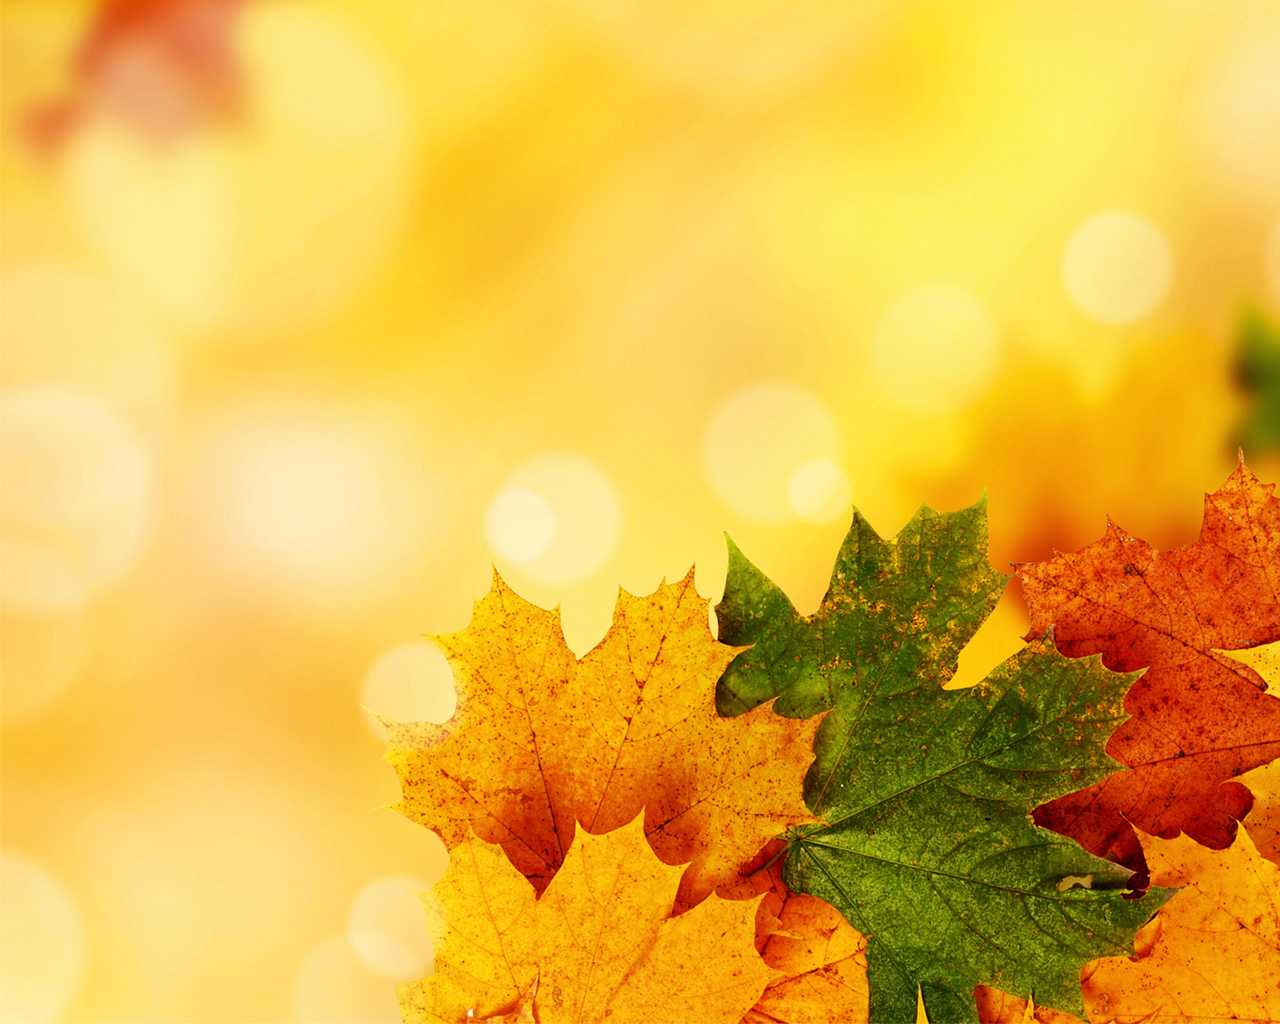 Fall Ppt Templates - Mahre.horizonconsulting.co With Free Fall Powerpoint Templates